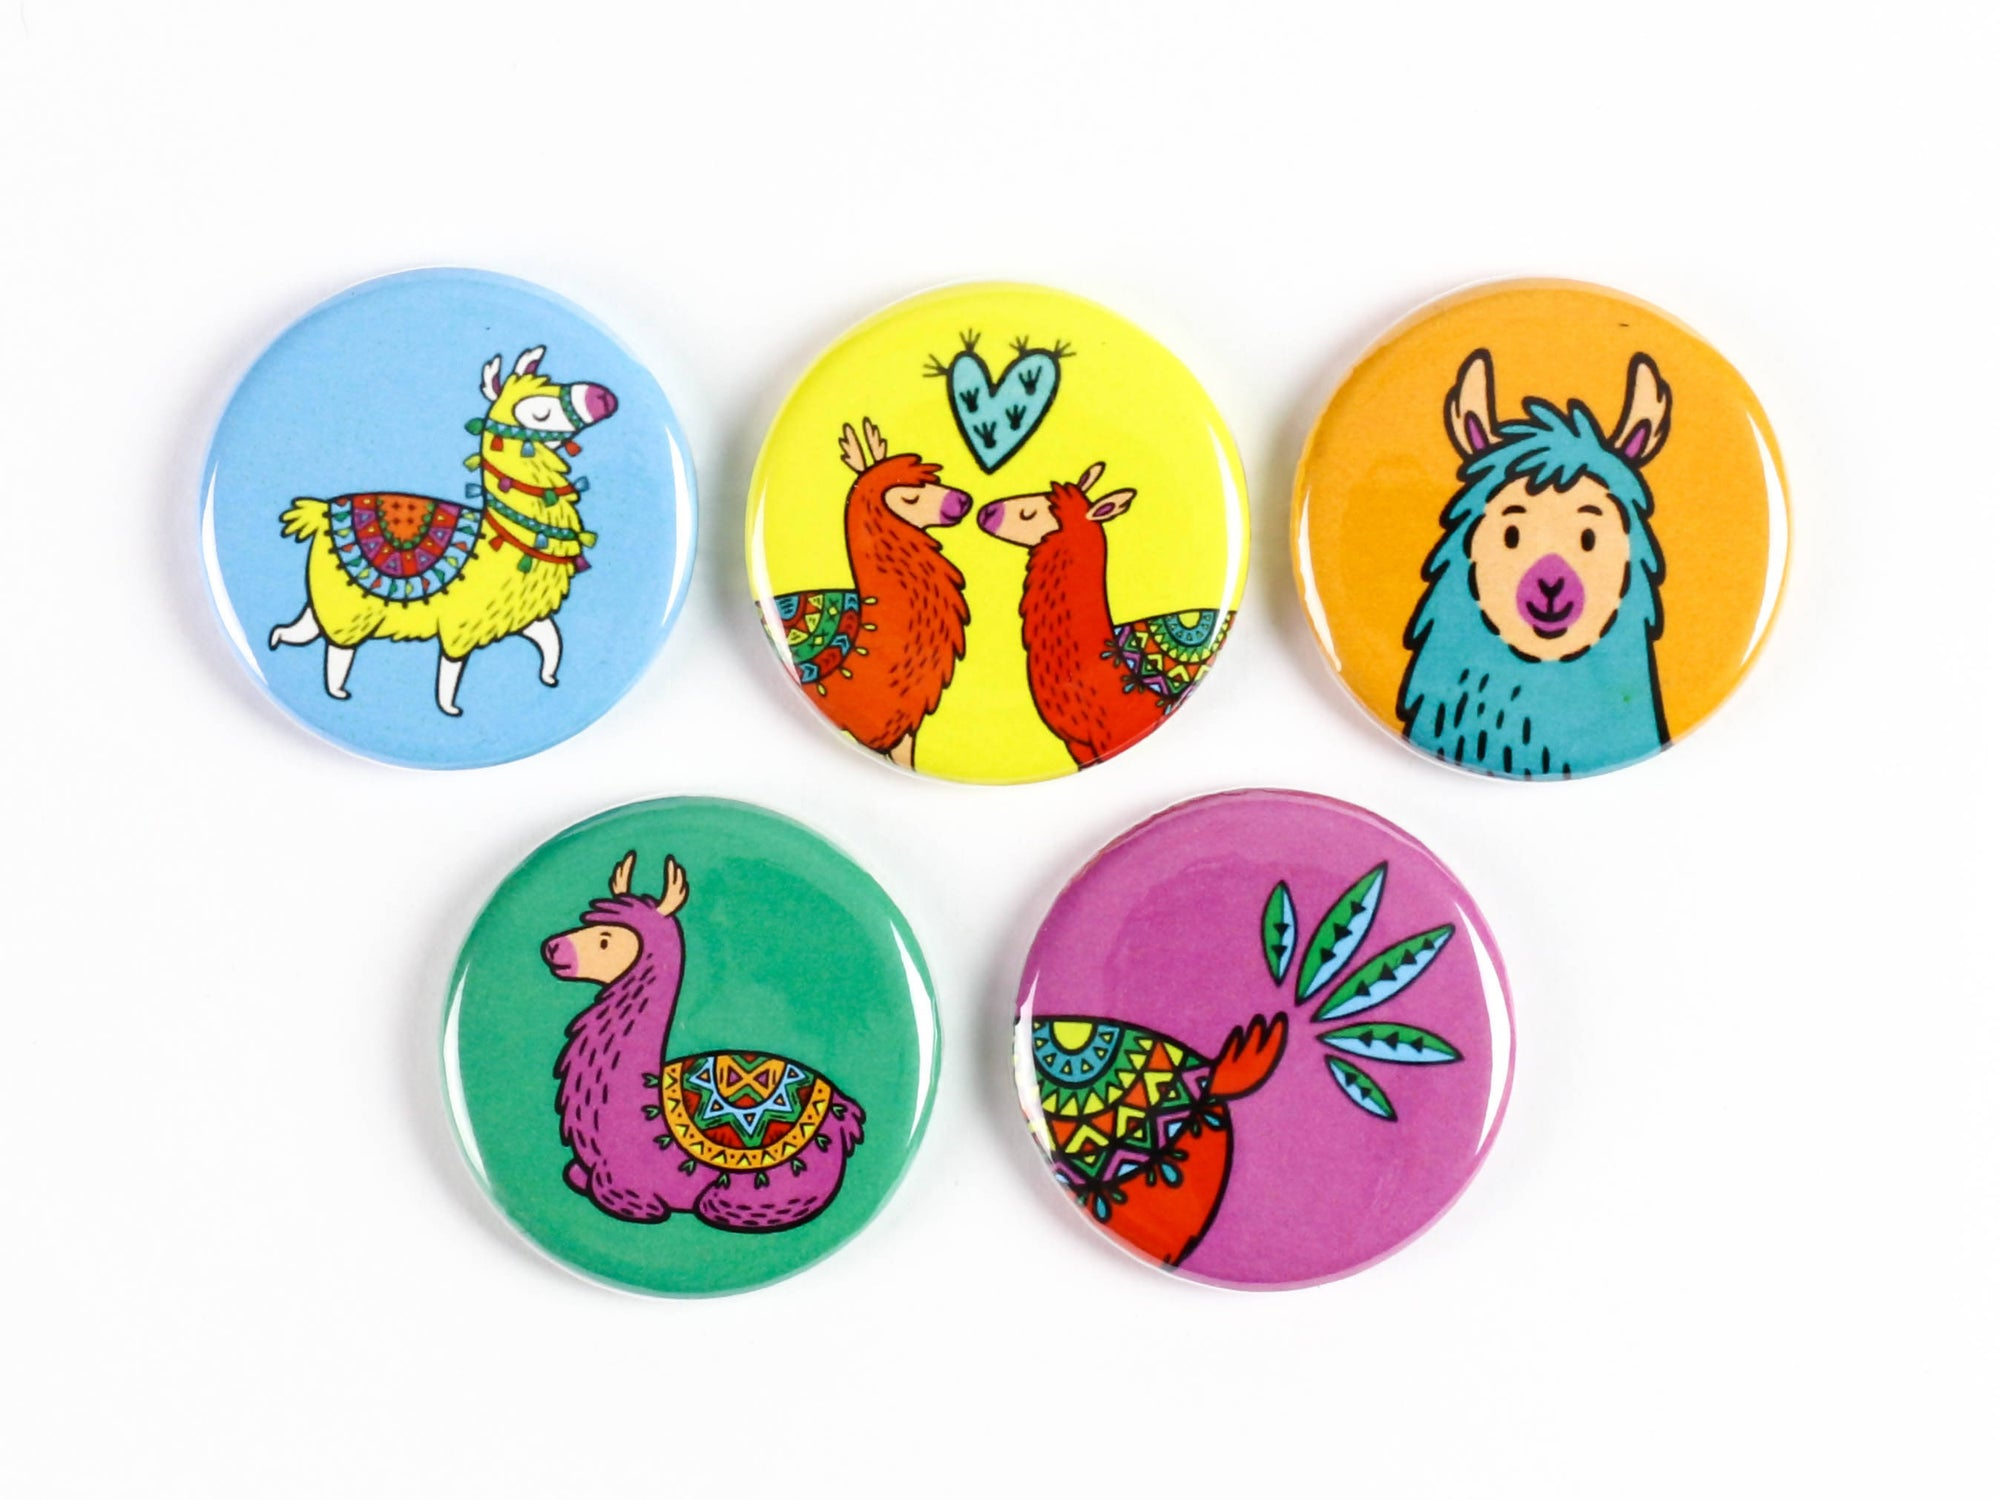 Llama have a fiesta! Brightly Coloured Llama Strong Ceramic Magnets or Pinback Buttons - Cute Llamas!